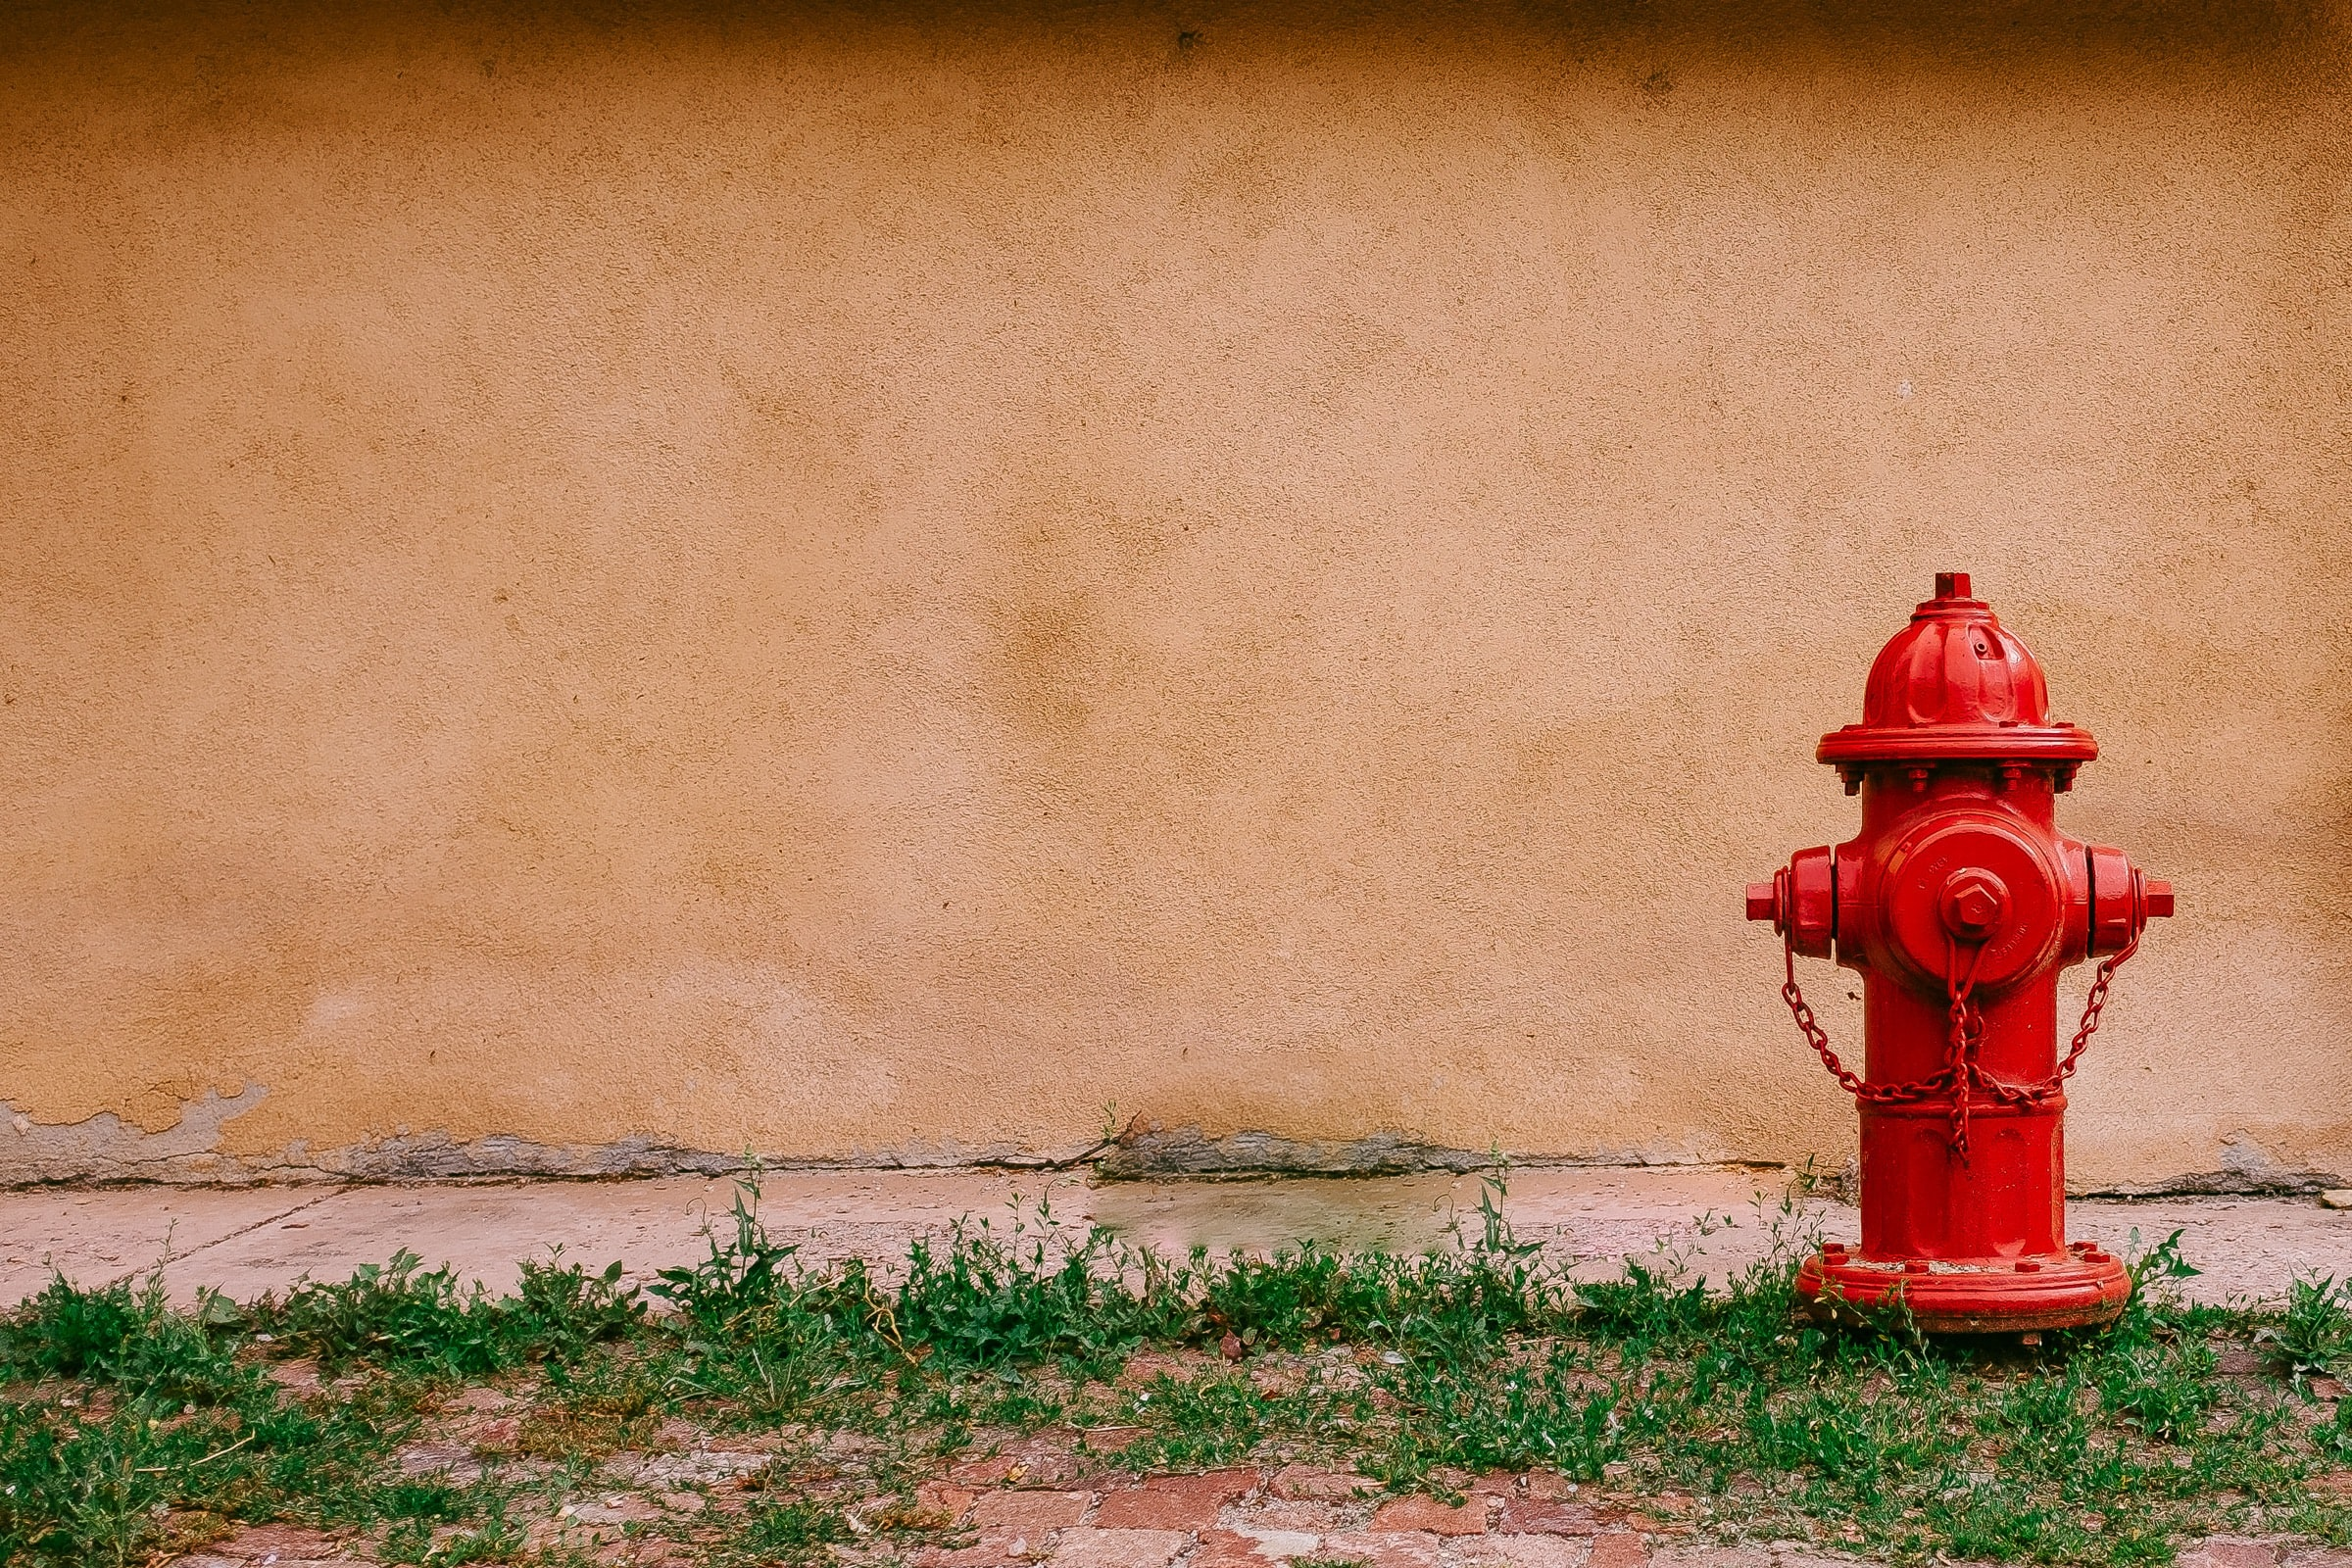 A red fire hydrant next to a wall in Santa Fe